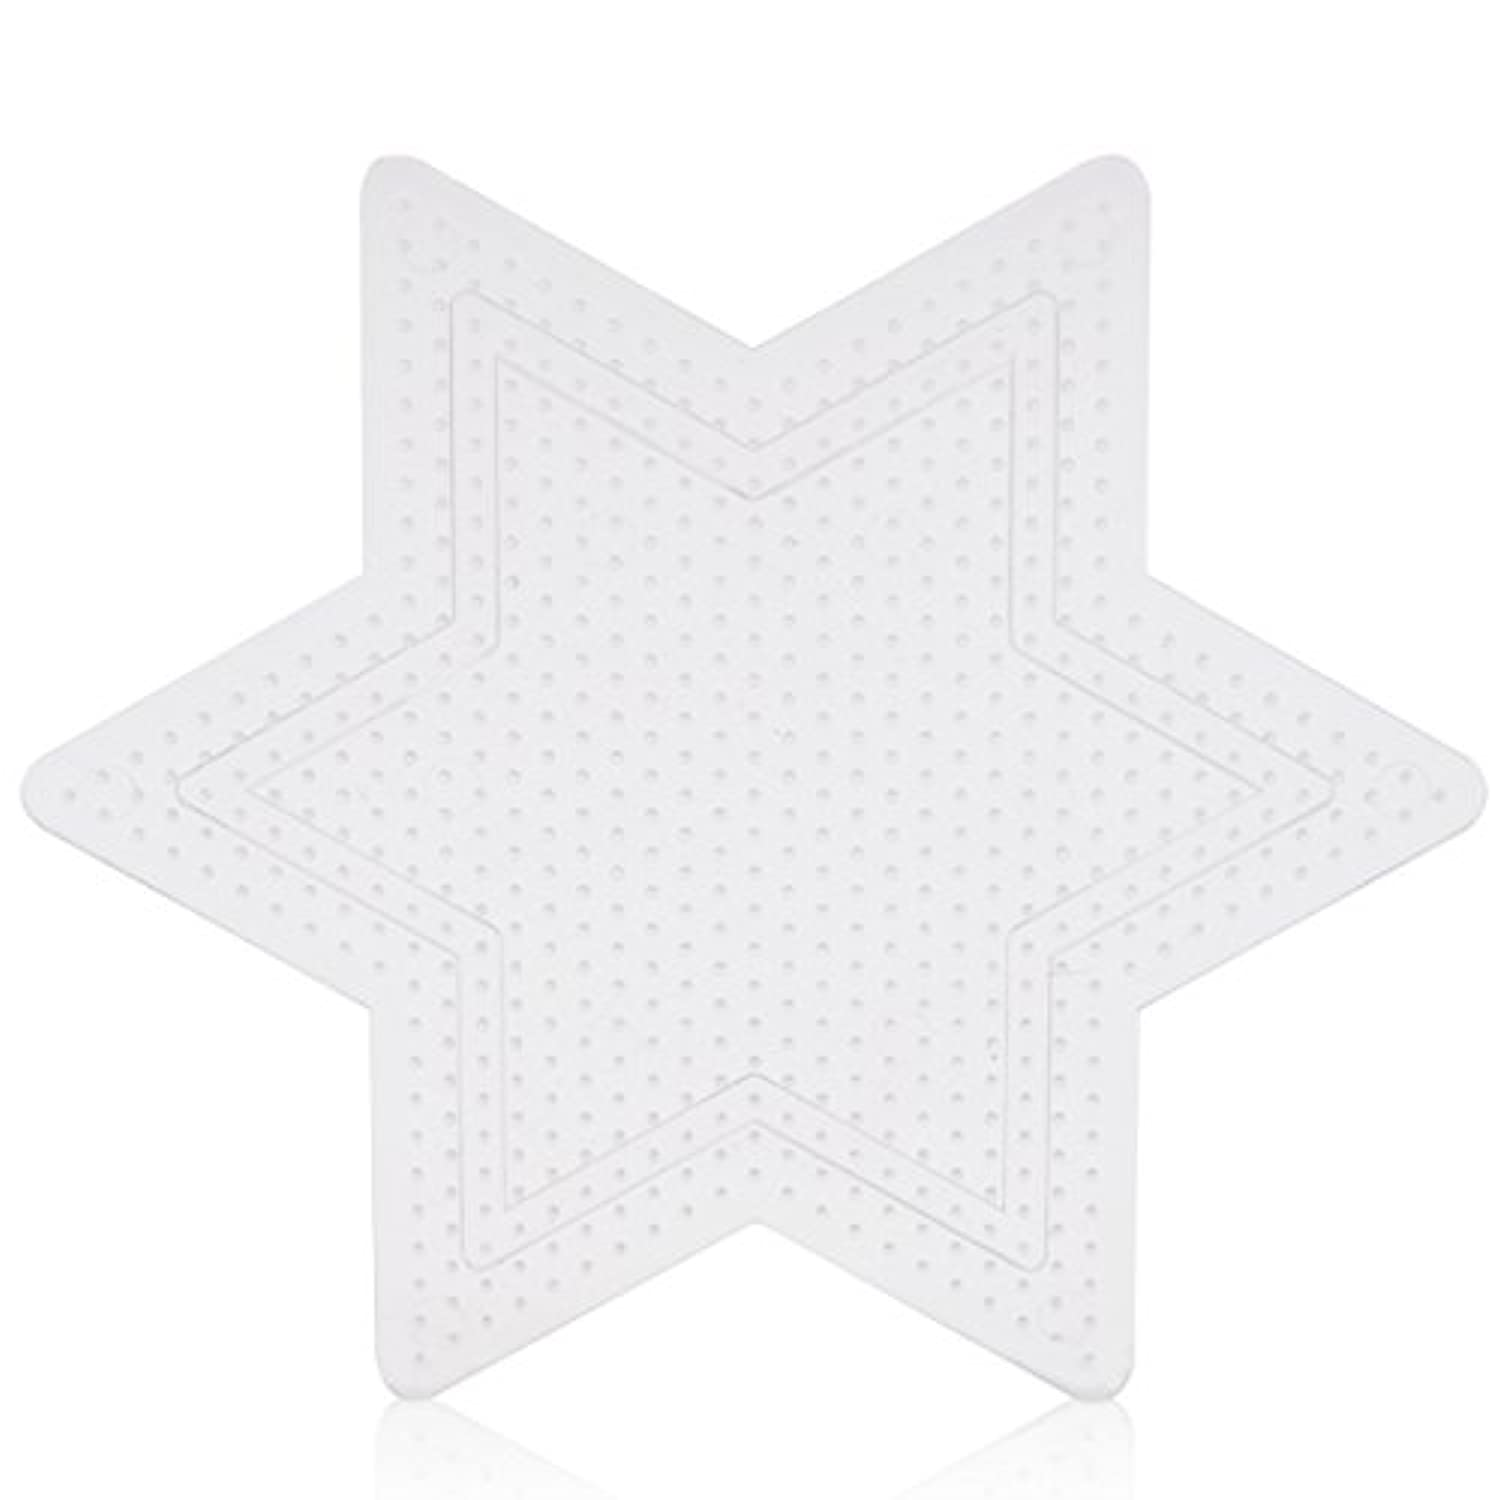 2.6mm beads small star pegboard for mini artkal fuse beads CP04